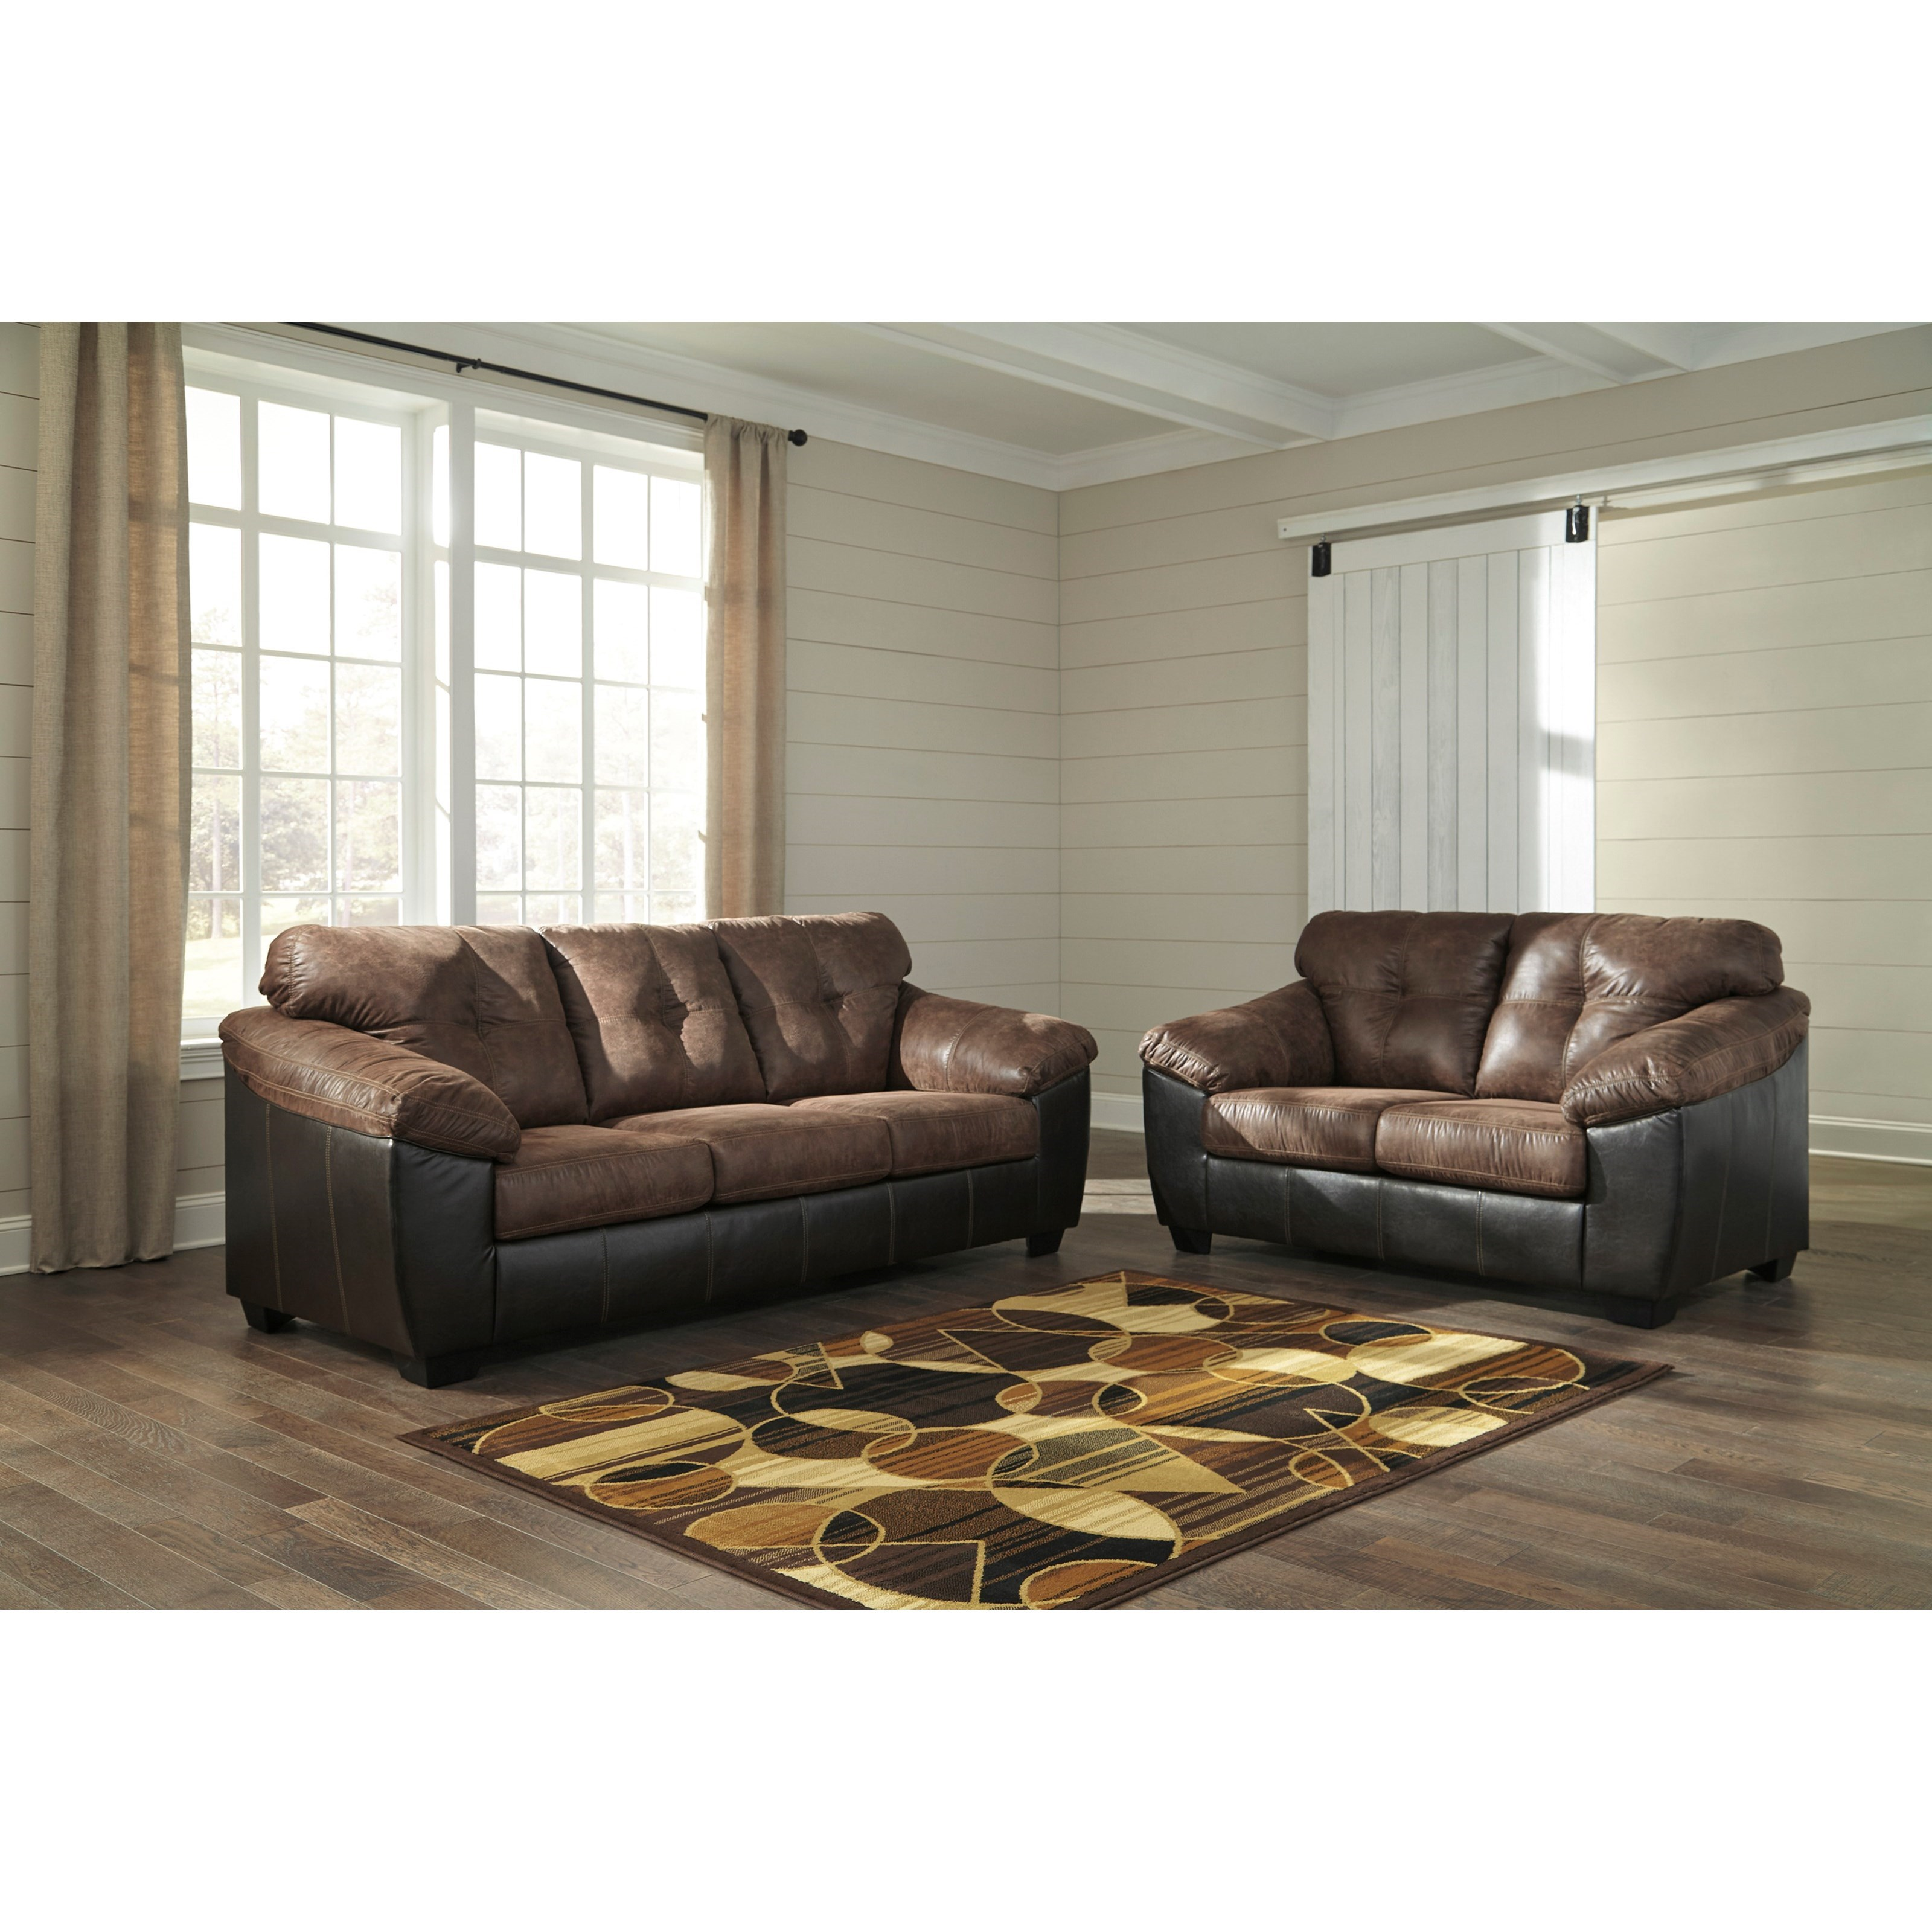 Signature Design By Ashley Gregale Stationary Living Room Group Household Furniture